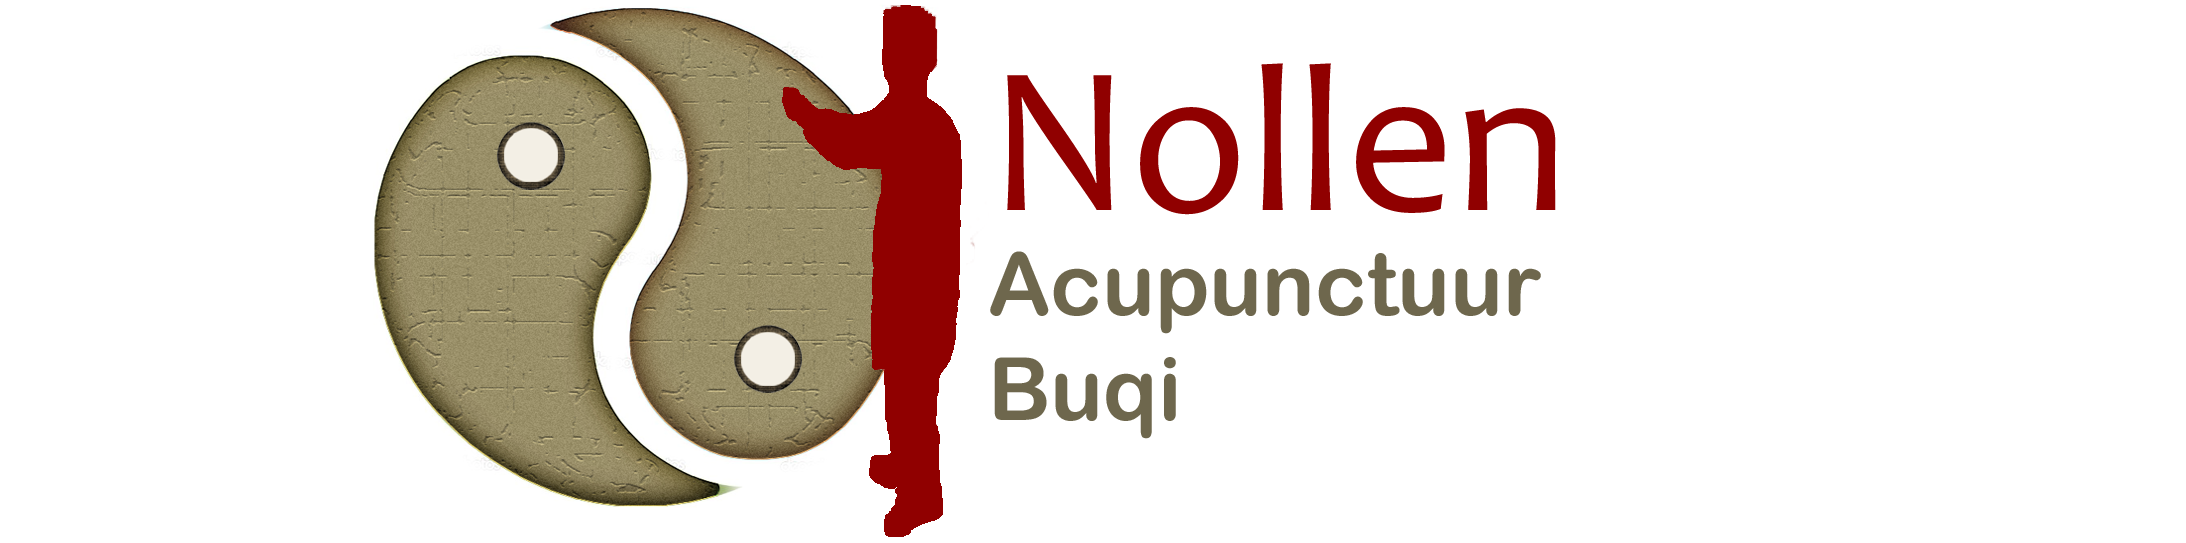 Acupunctuur Buqi Nollen Deventer/Bathmen